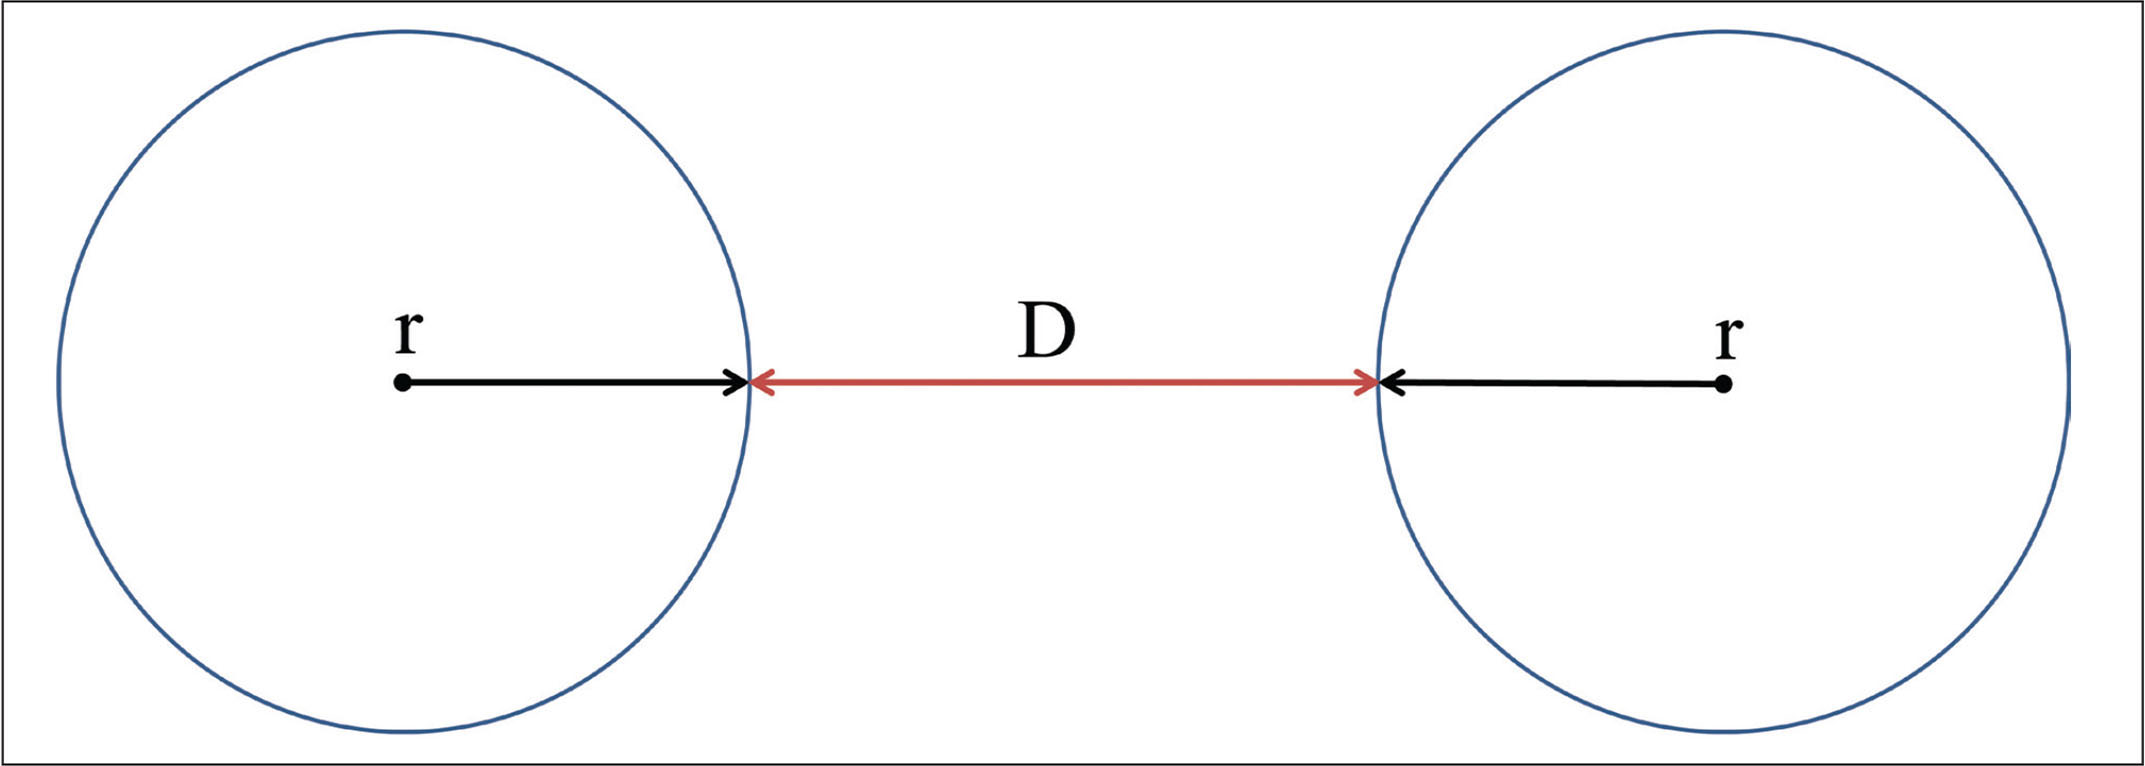 The measurement of fibril diameter and interfibrillar spacing, where r is the radius of a collagen fibril and D is the interfibrillar spacing between two collagen fibrils.